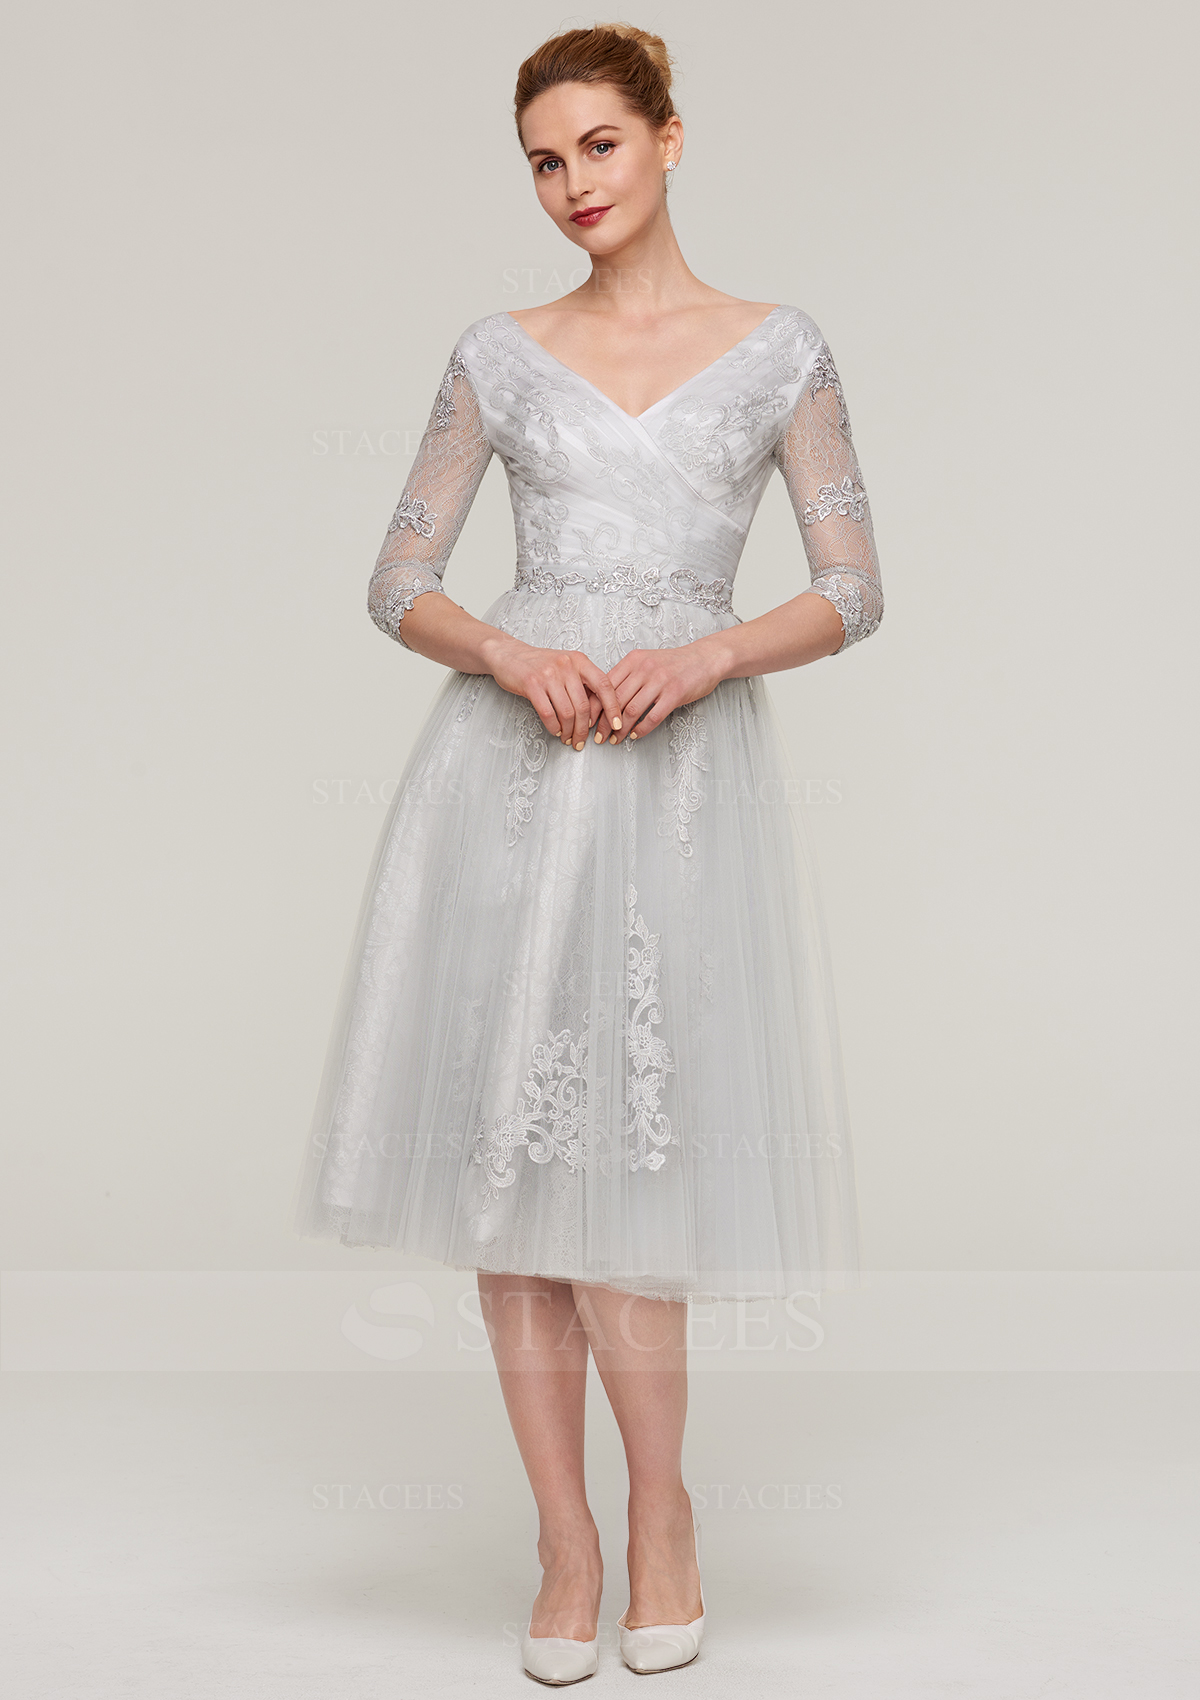 c09e4877e A-line/Princess V Neck 3/4 Sleeve Tea-Length Tulle Mother of the ...